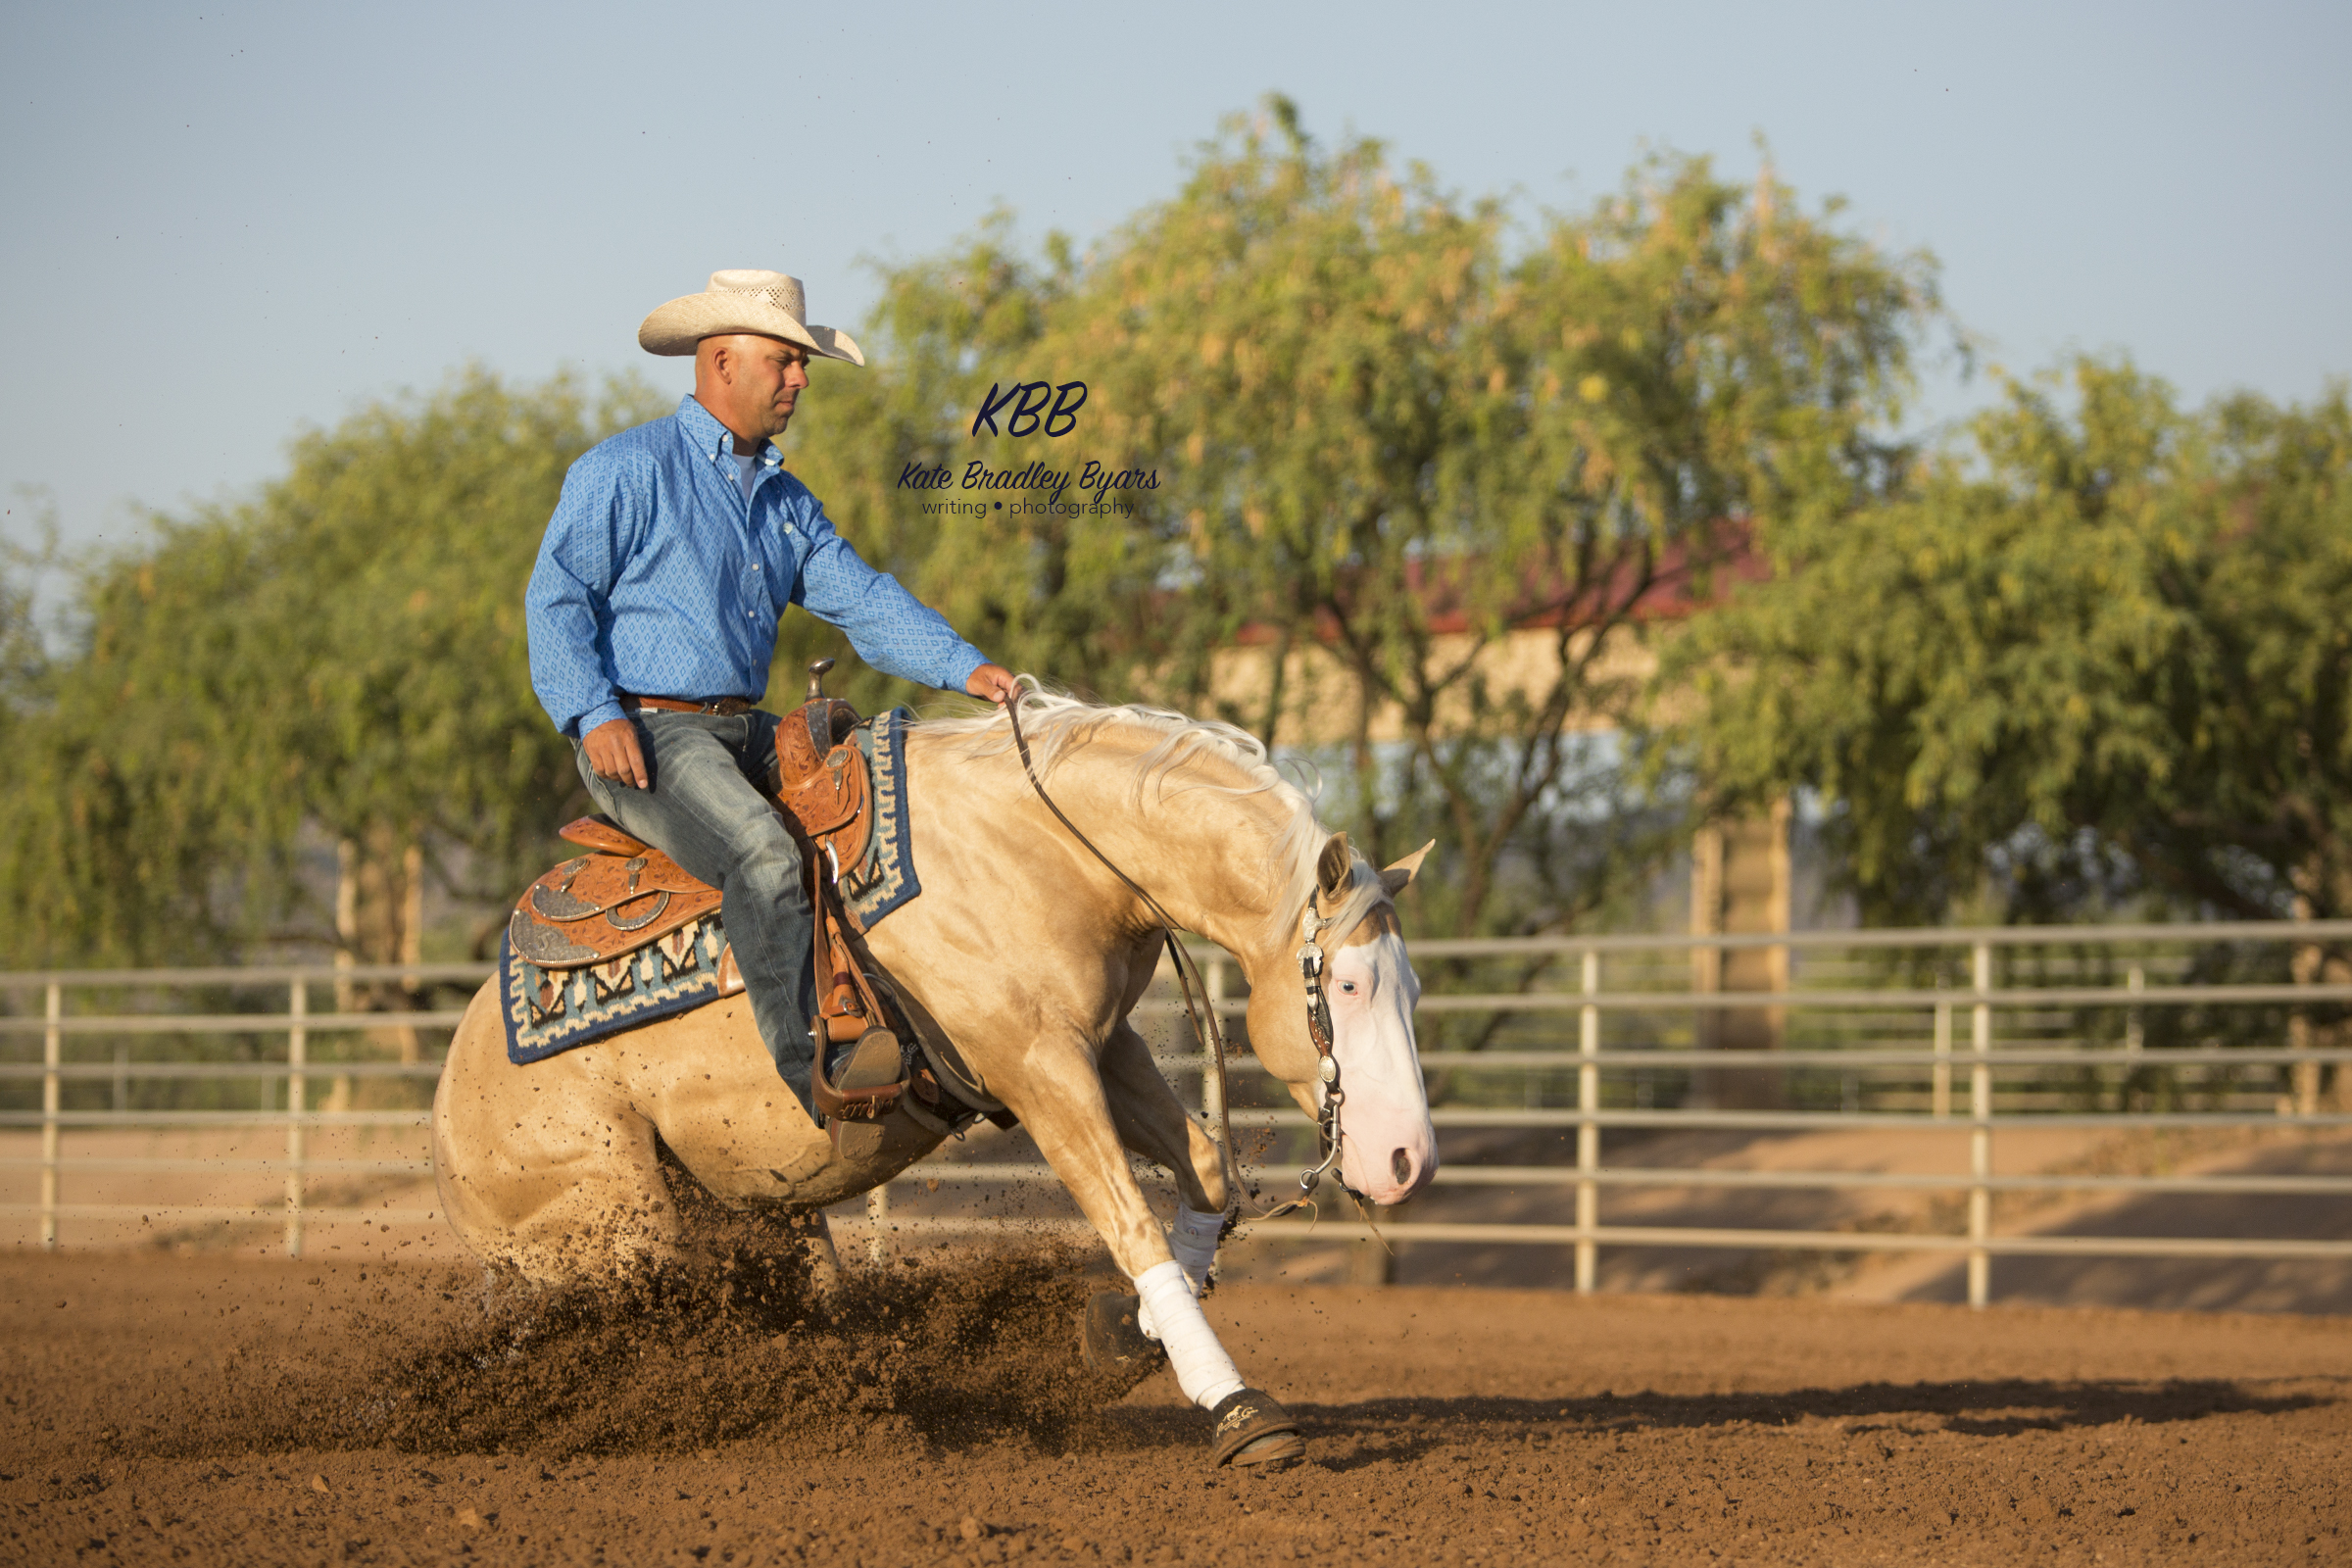 Anderson Bean Boot Company endorser Craig Schmersal, reining horse trainer.